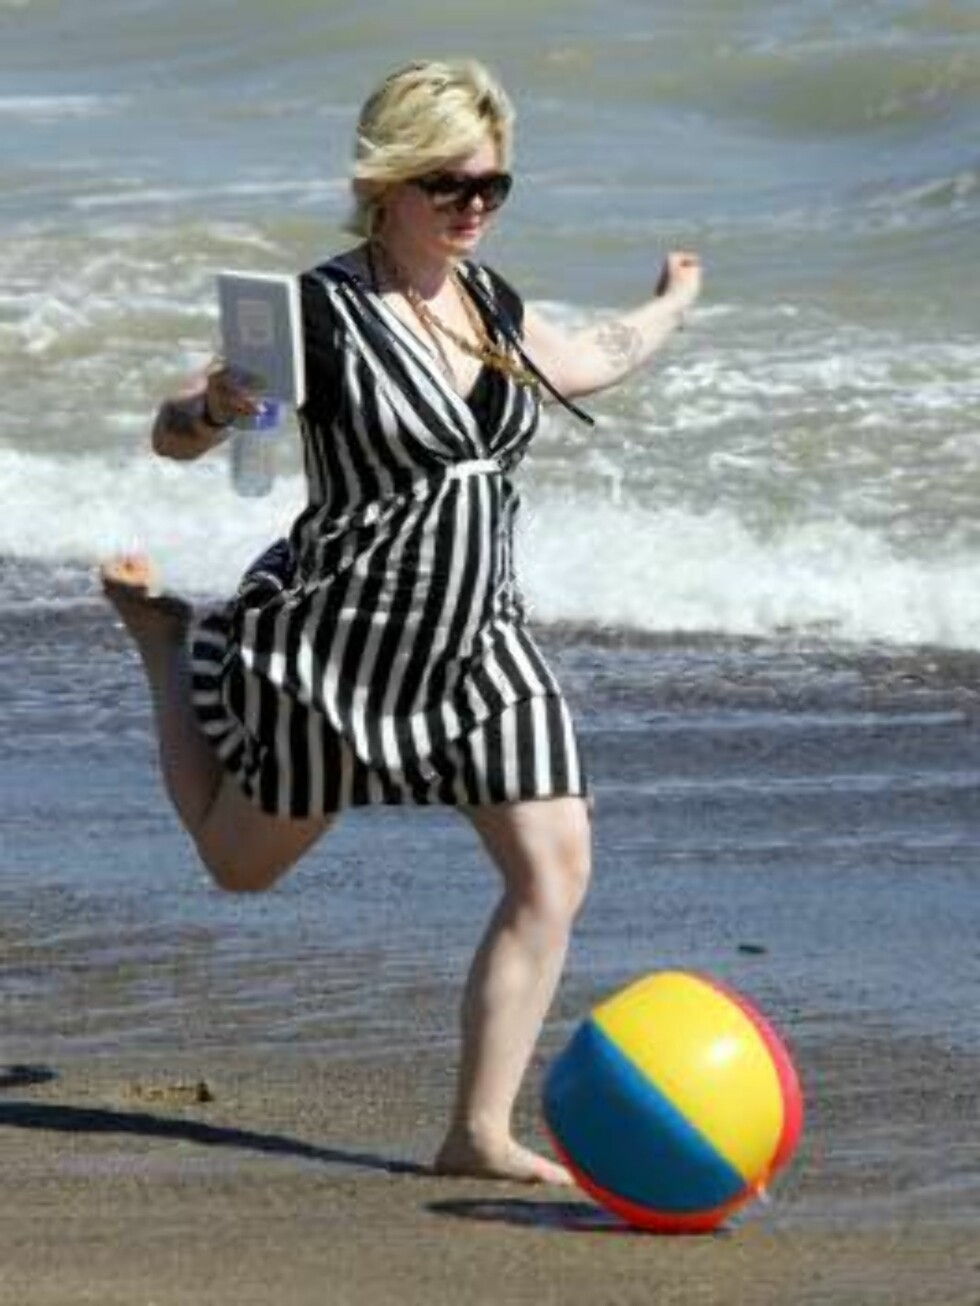 Kelly Osbourne kicks the ball on the beach in Malibu August 5, 2006 X17agency exclusive Foto: All Over Press